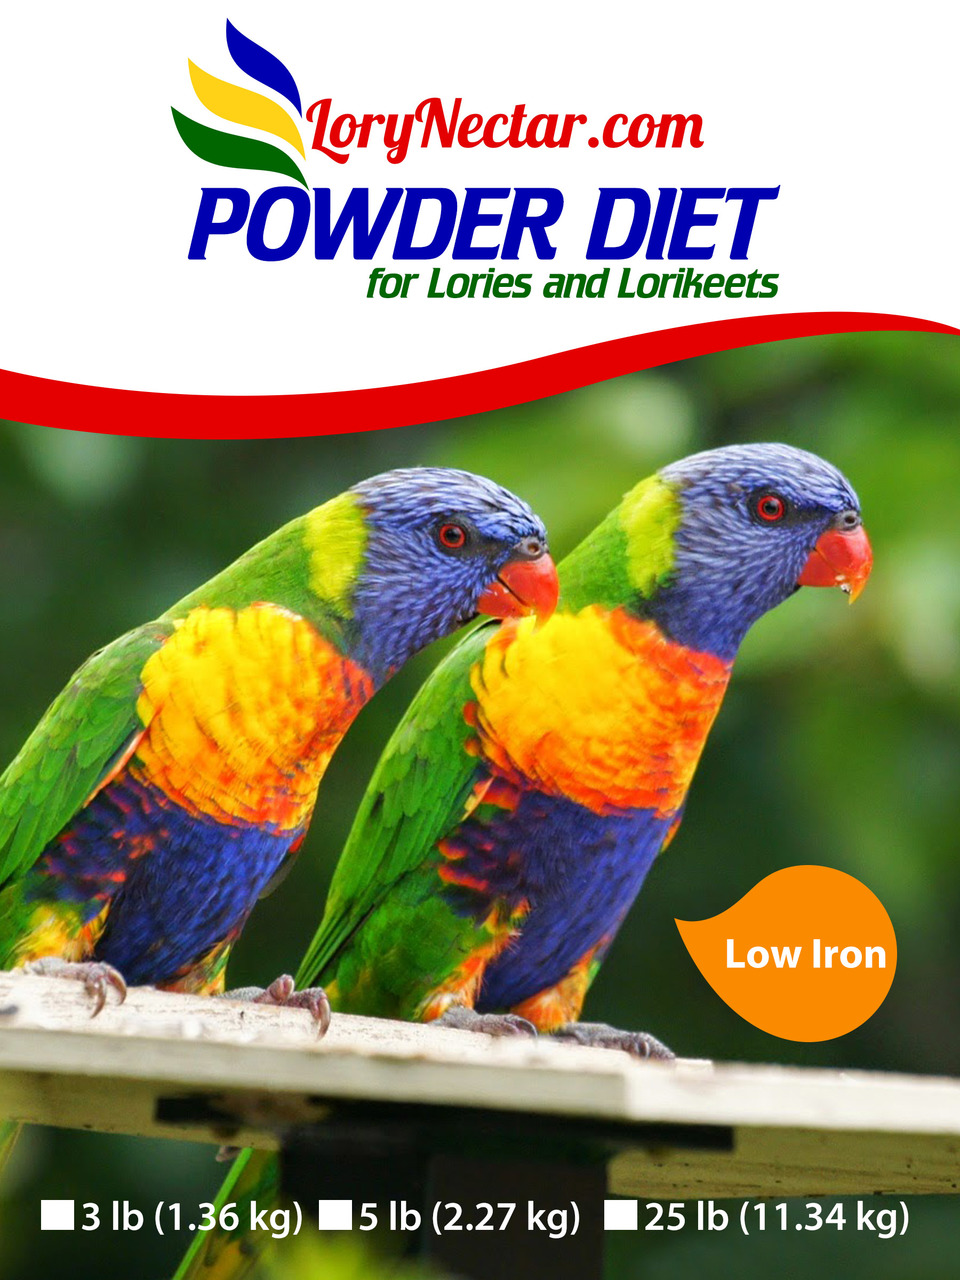 Best LoryNectar Powder Diet that has low Iron.